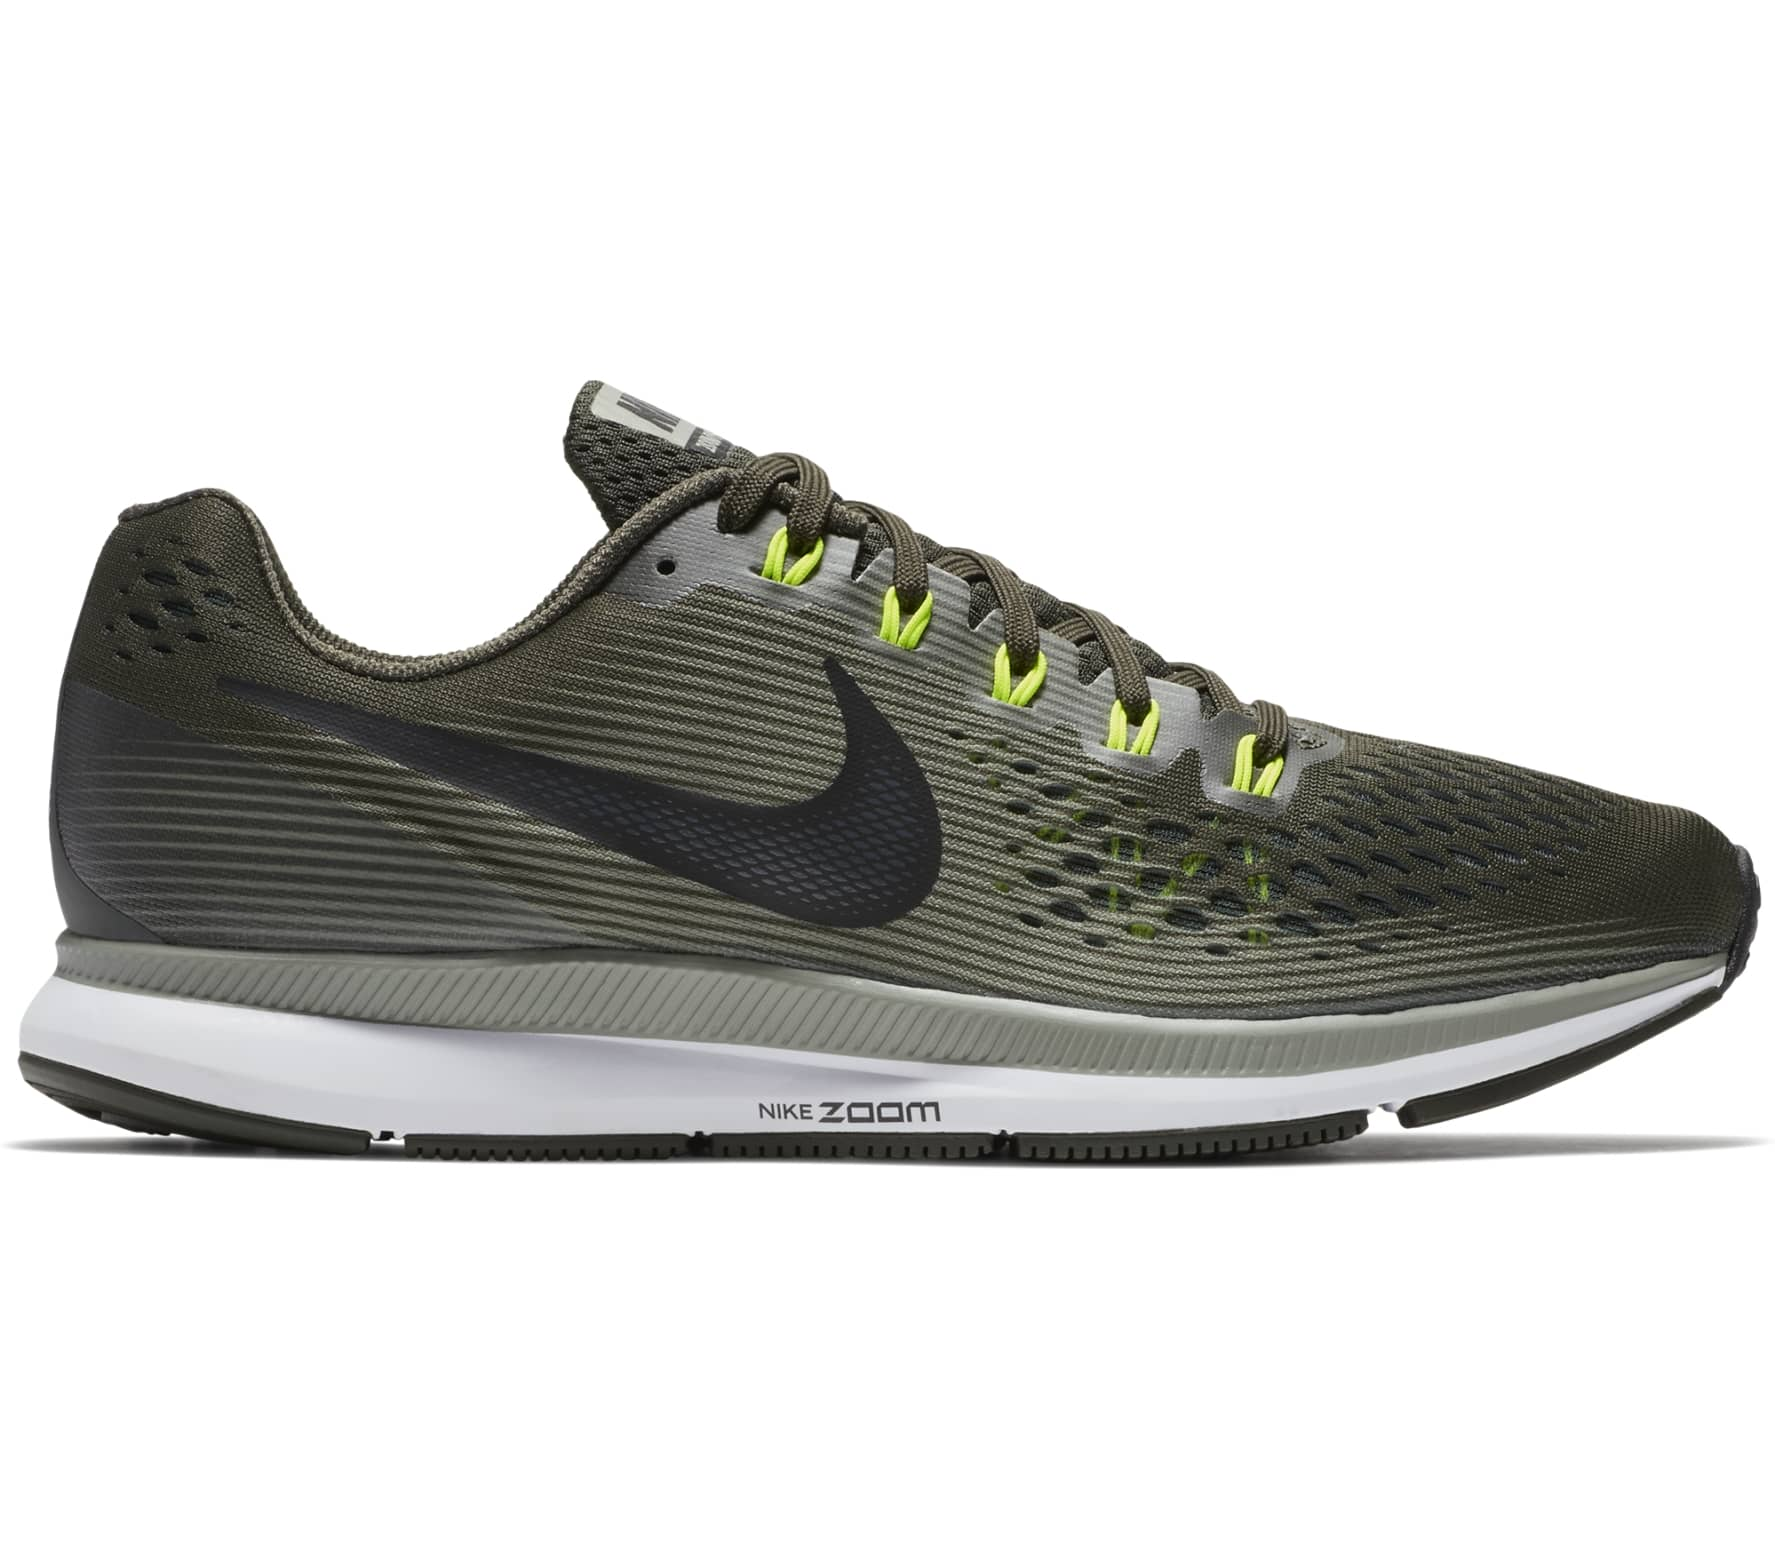 premium selection bc164 612b5 Nike - Air Zoom Pegasus 34 men s running shoes (green brown)